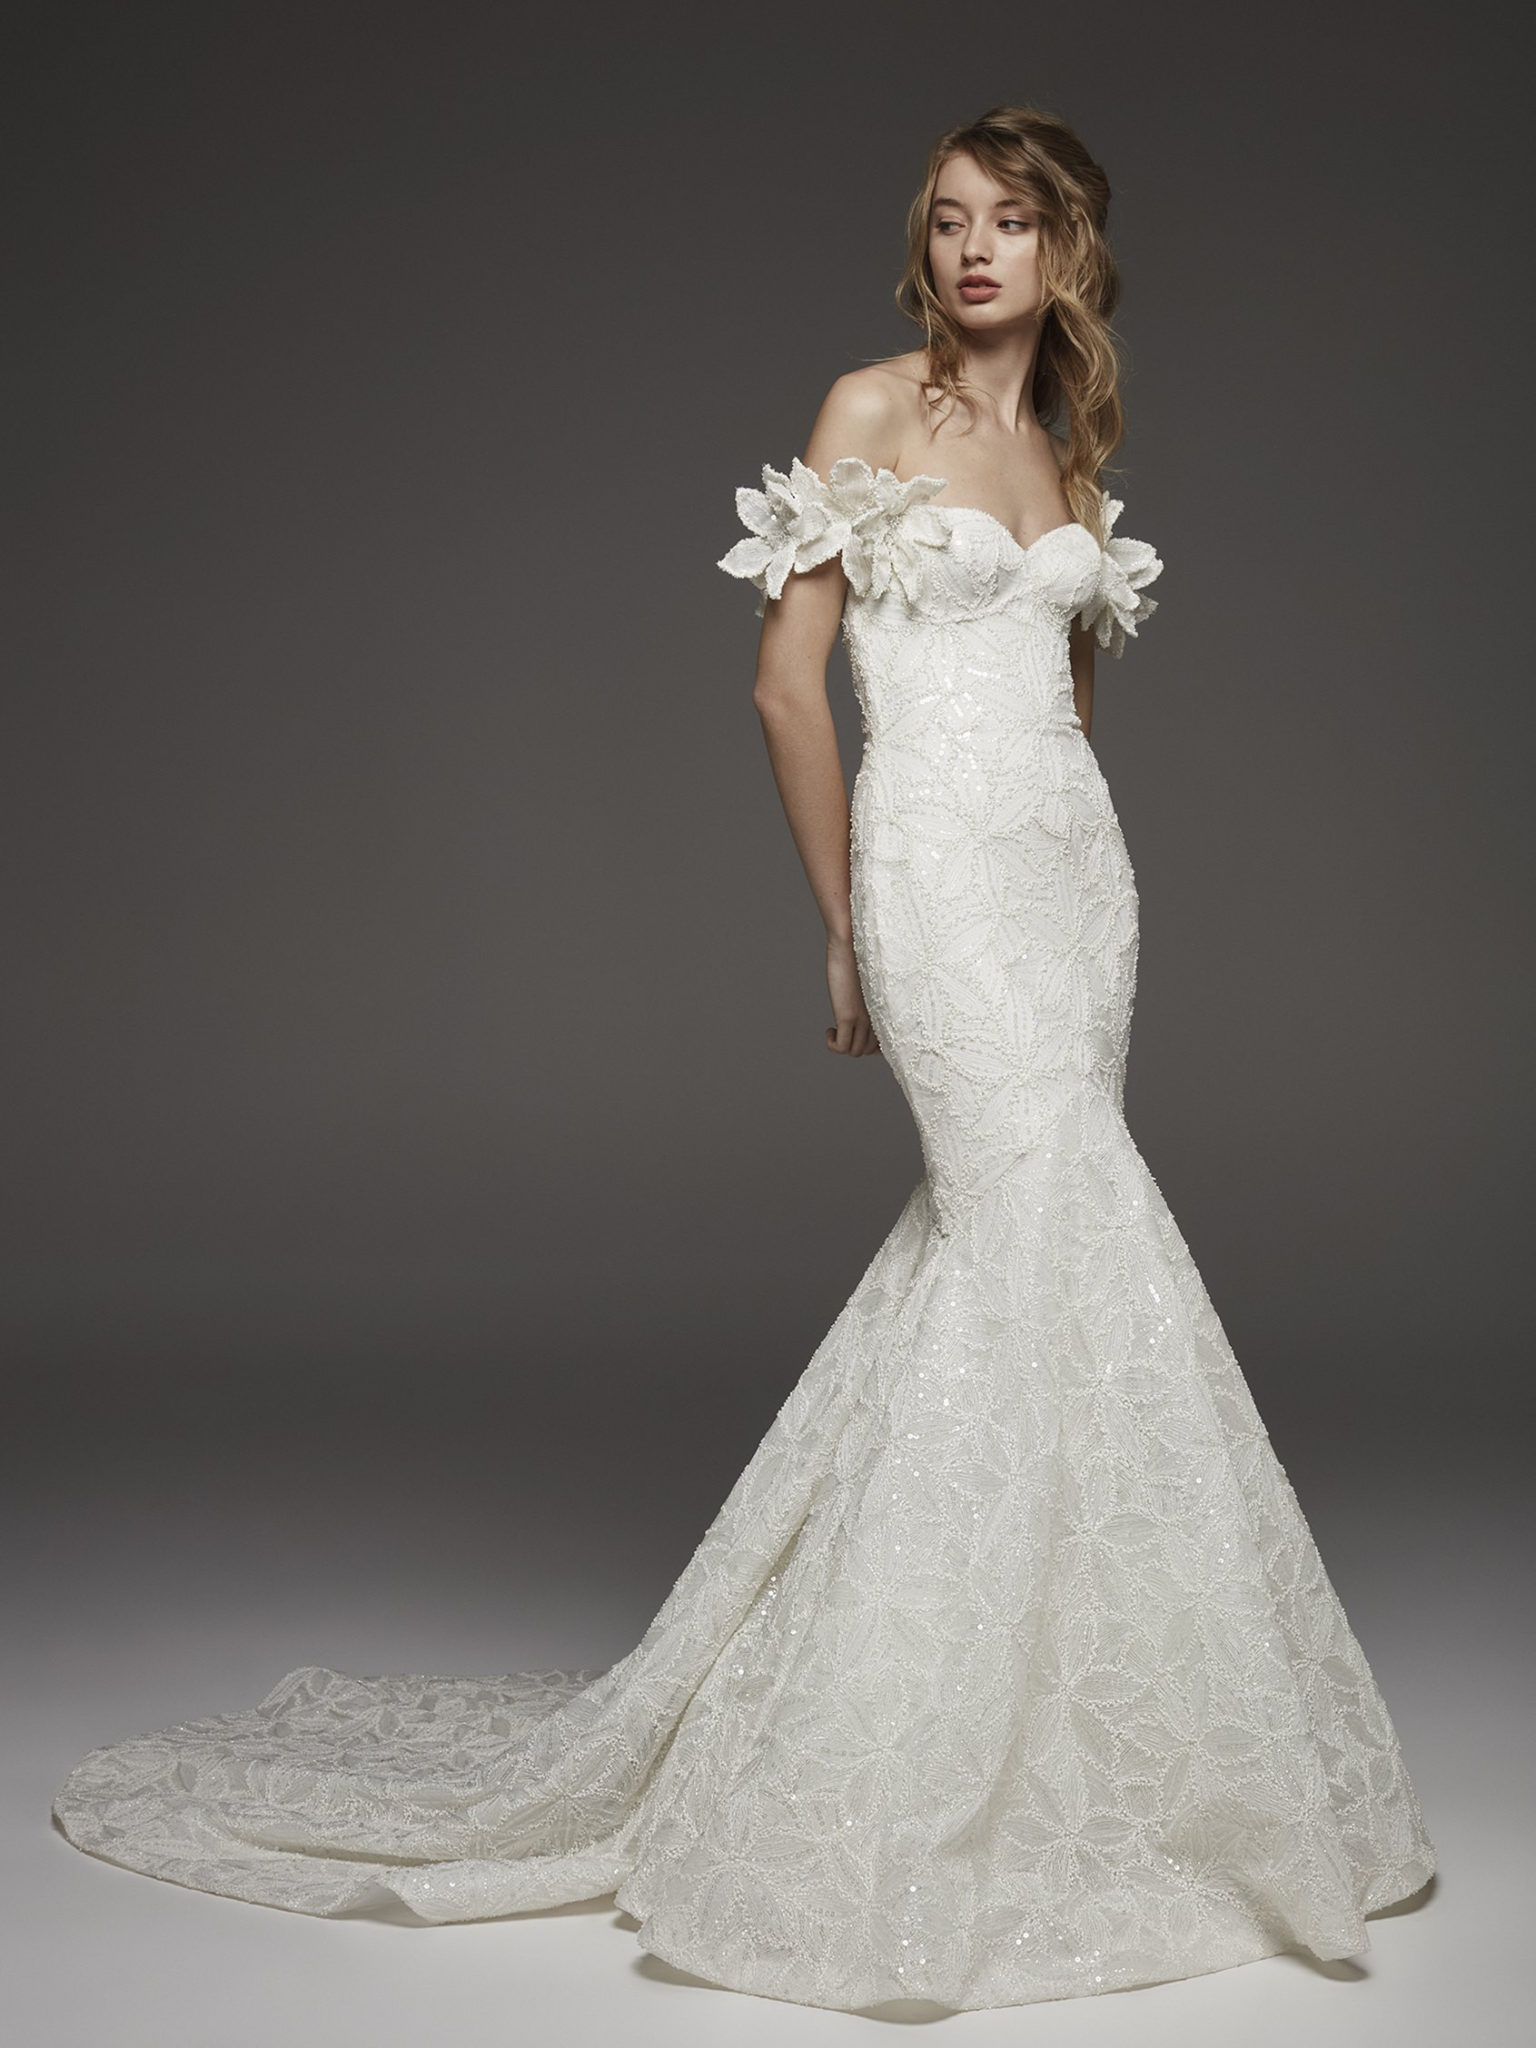 53eeb85865c Atelier Pronovias wedding dresses couture collection from Pronovias